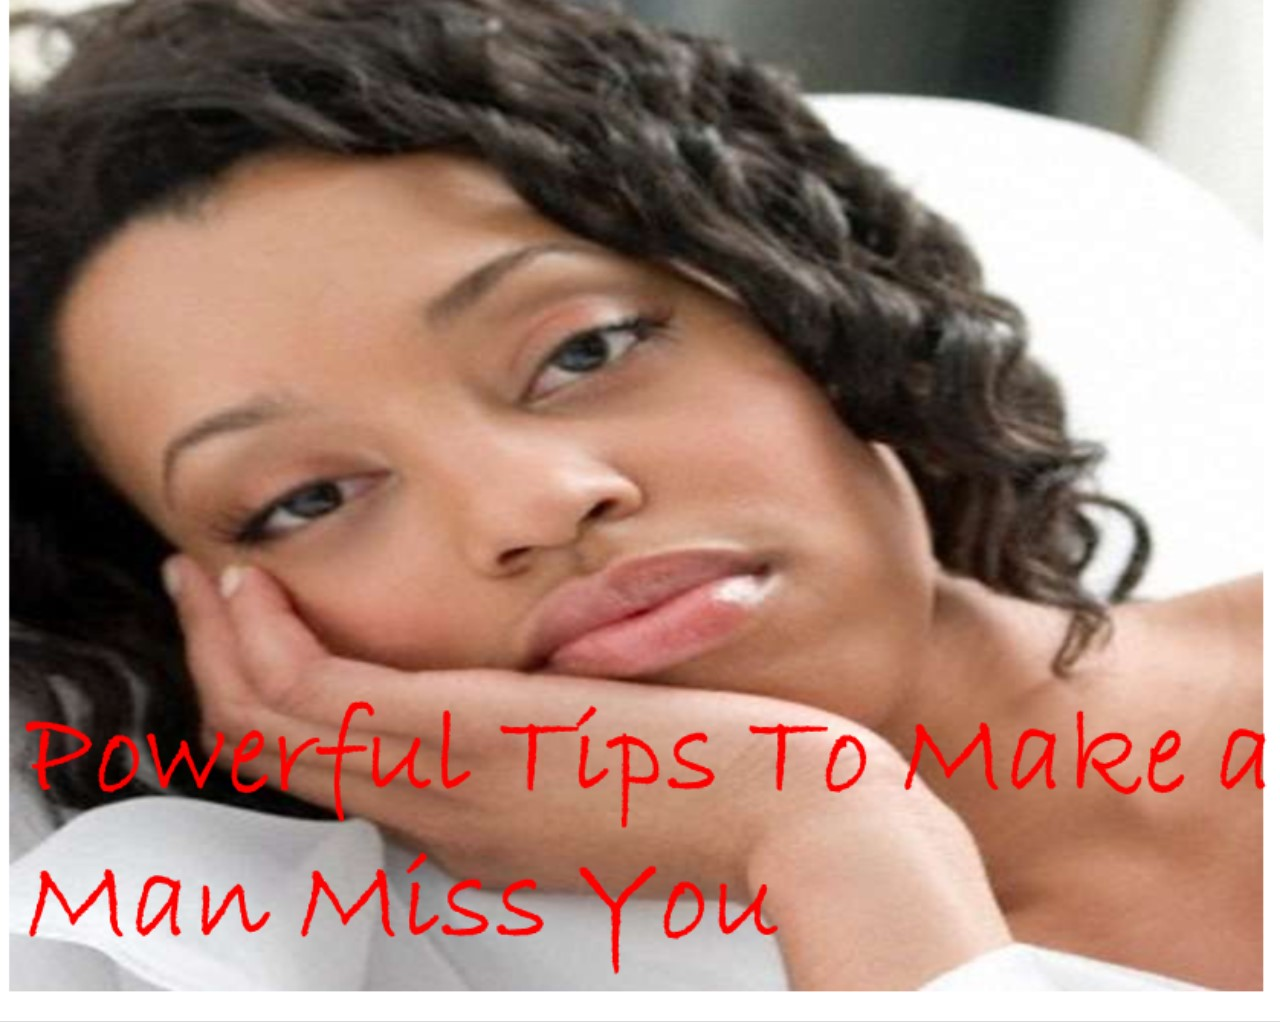 Powerful Tips To Make a Man Miss You Like a Crazy